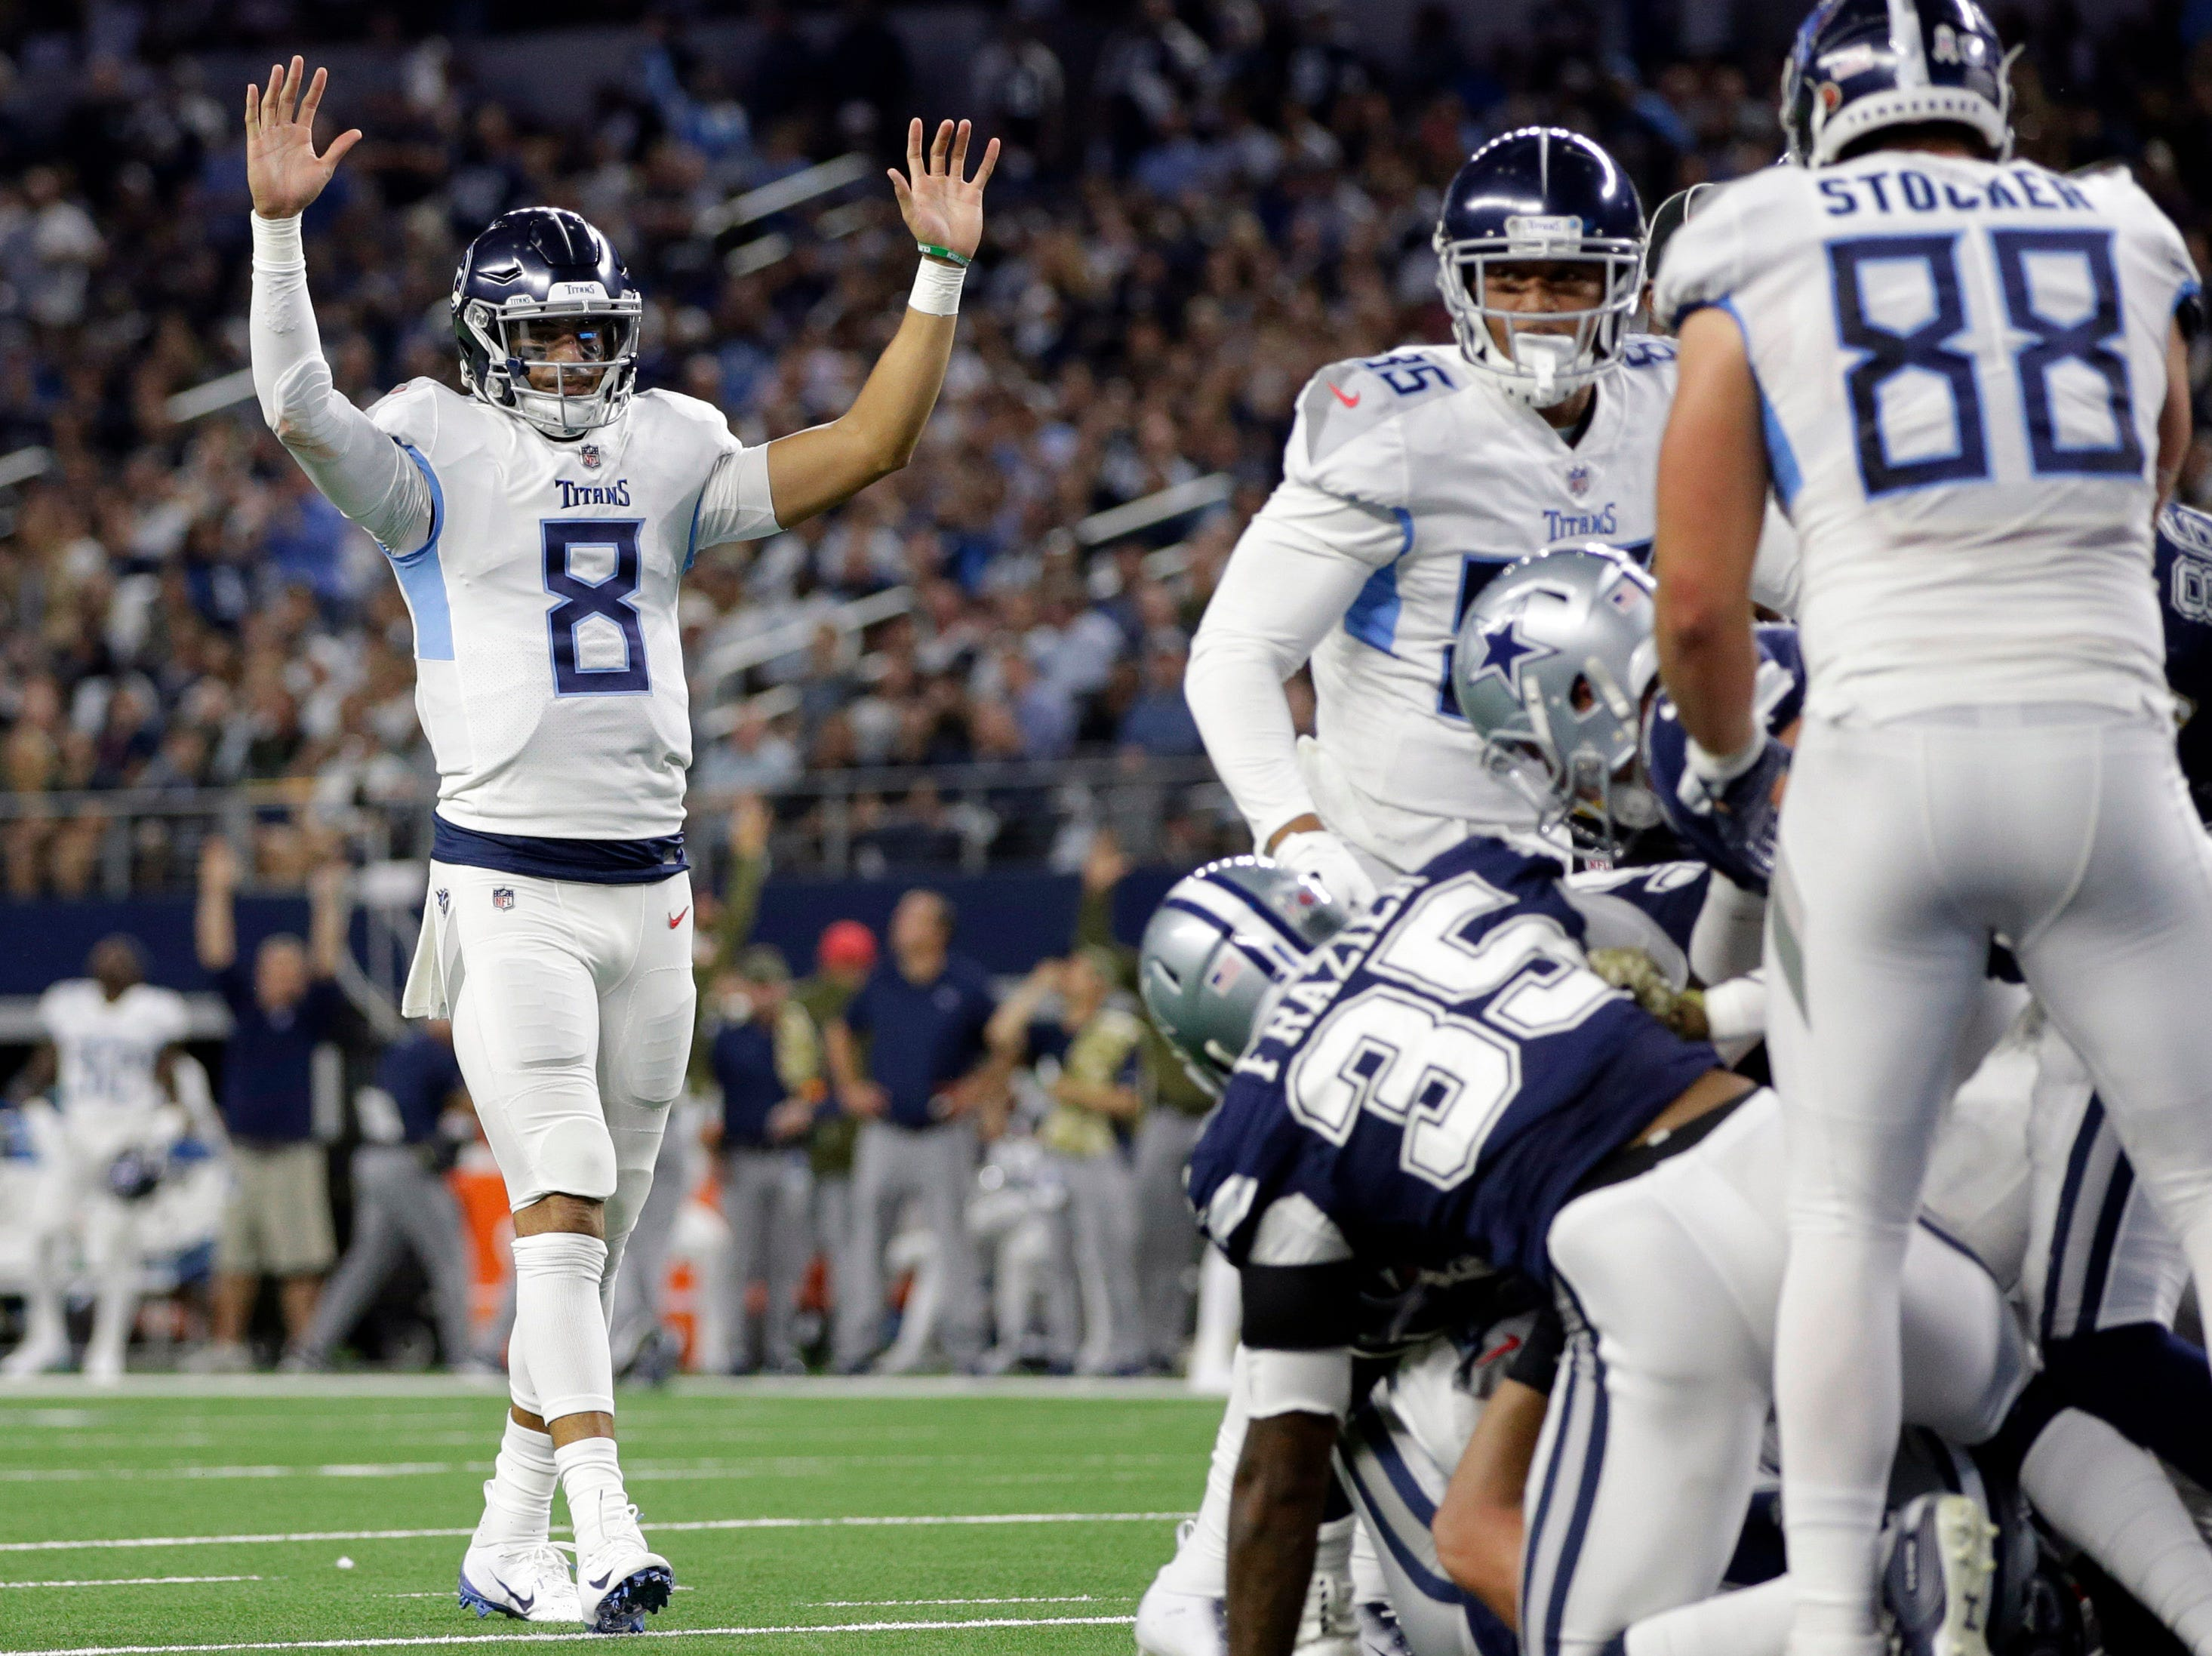 Nov 5, 2018; Arlington, TX, USA; Tennessee Titans quarterback Marcus Mariota (8) reacts to a touchdown in the second quarter against the Dallas Cowboys at AT&T Stadium.